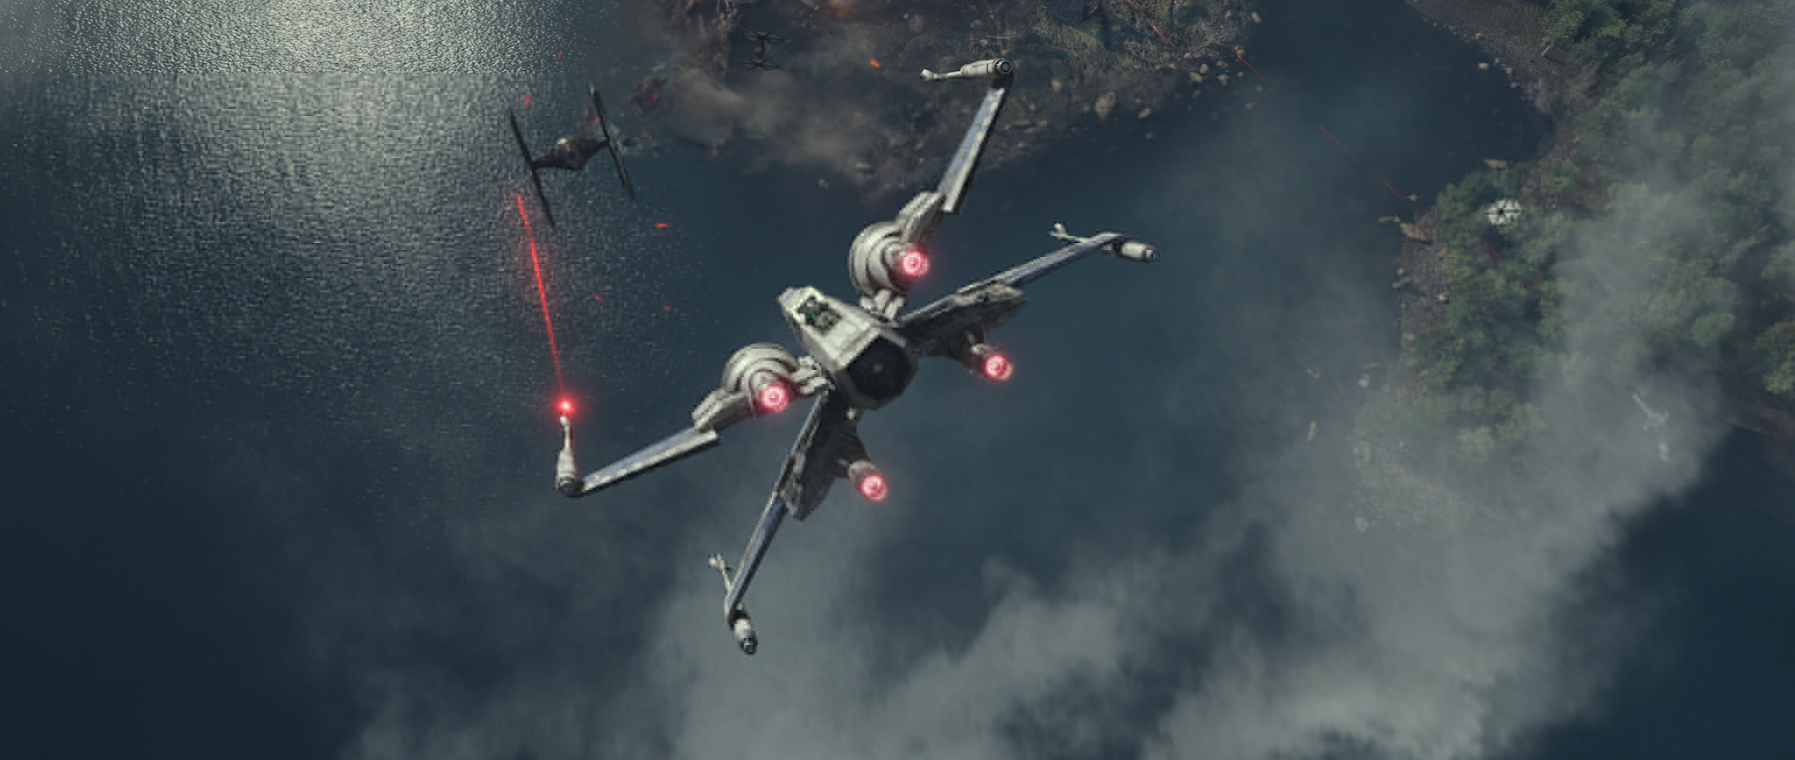 Star Wars the Force Awakens New 3 - H 2015